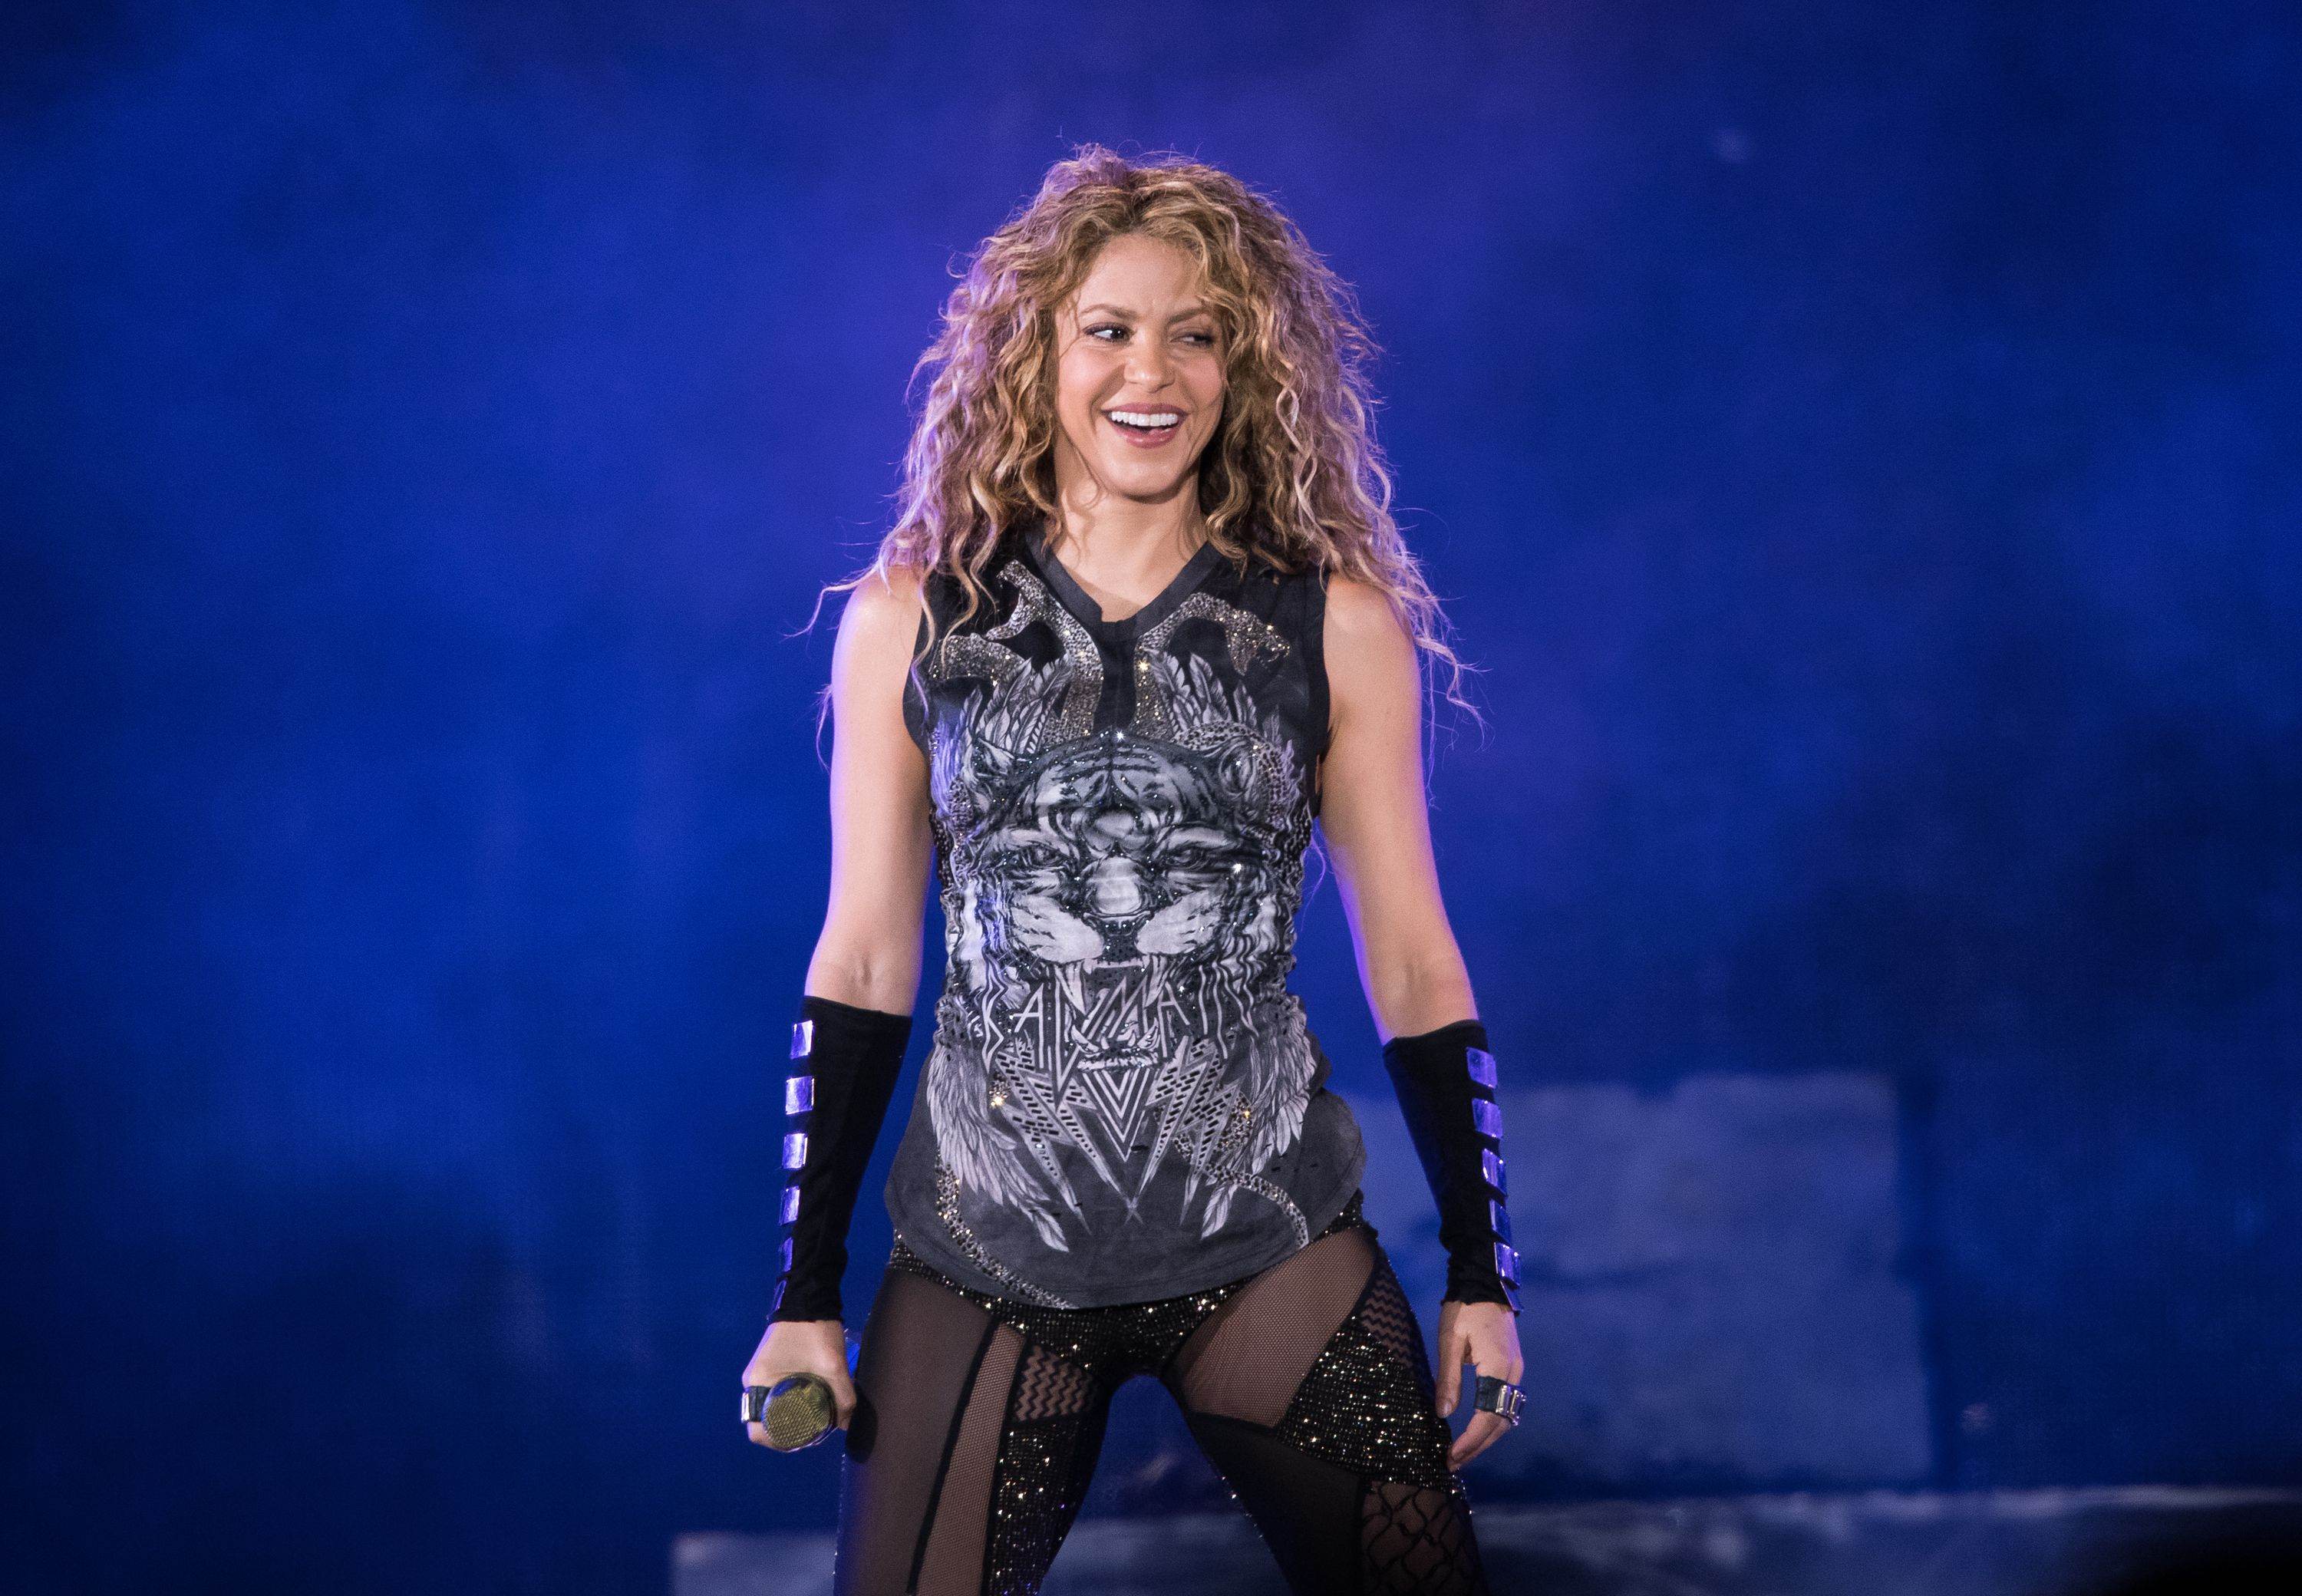 Shakira Works Out 6 Days a Week and Eats High-Protein Meals to Stay in Shape At 43